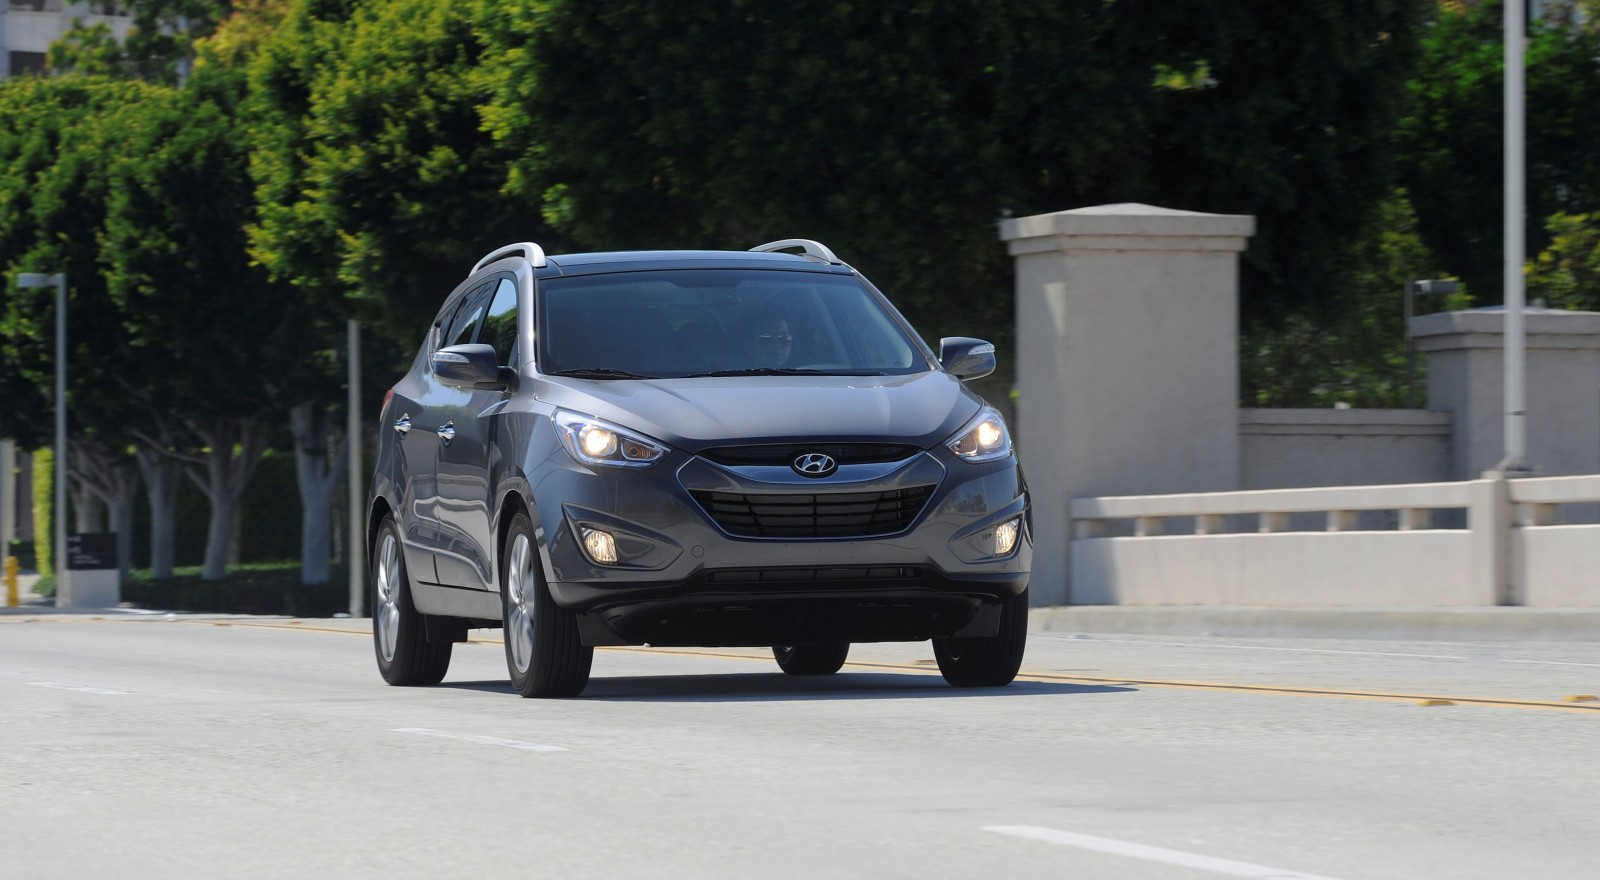 2015 Hyundai Tucson is Trendy Crossover With Loaded Pricing Under $30,000 26